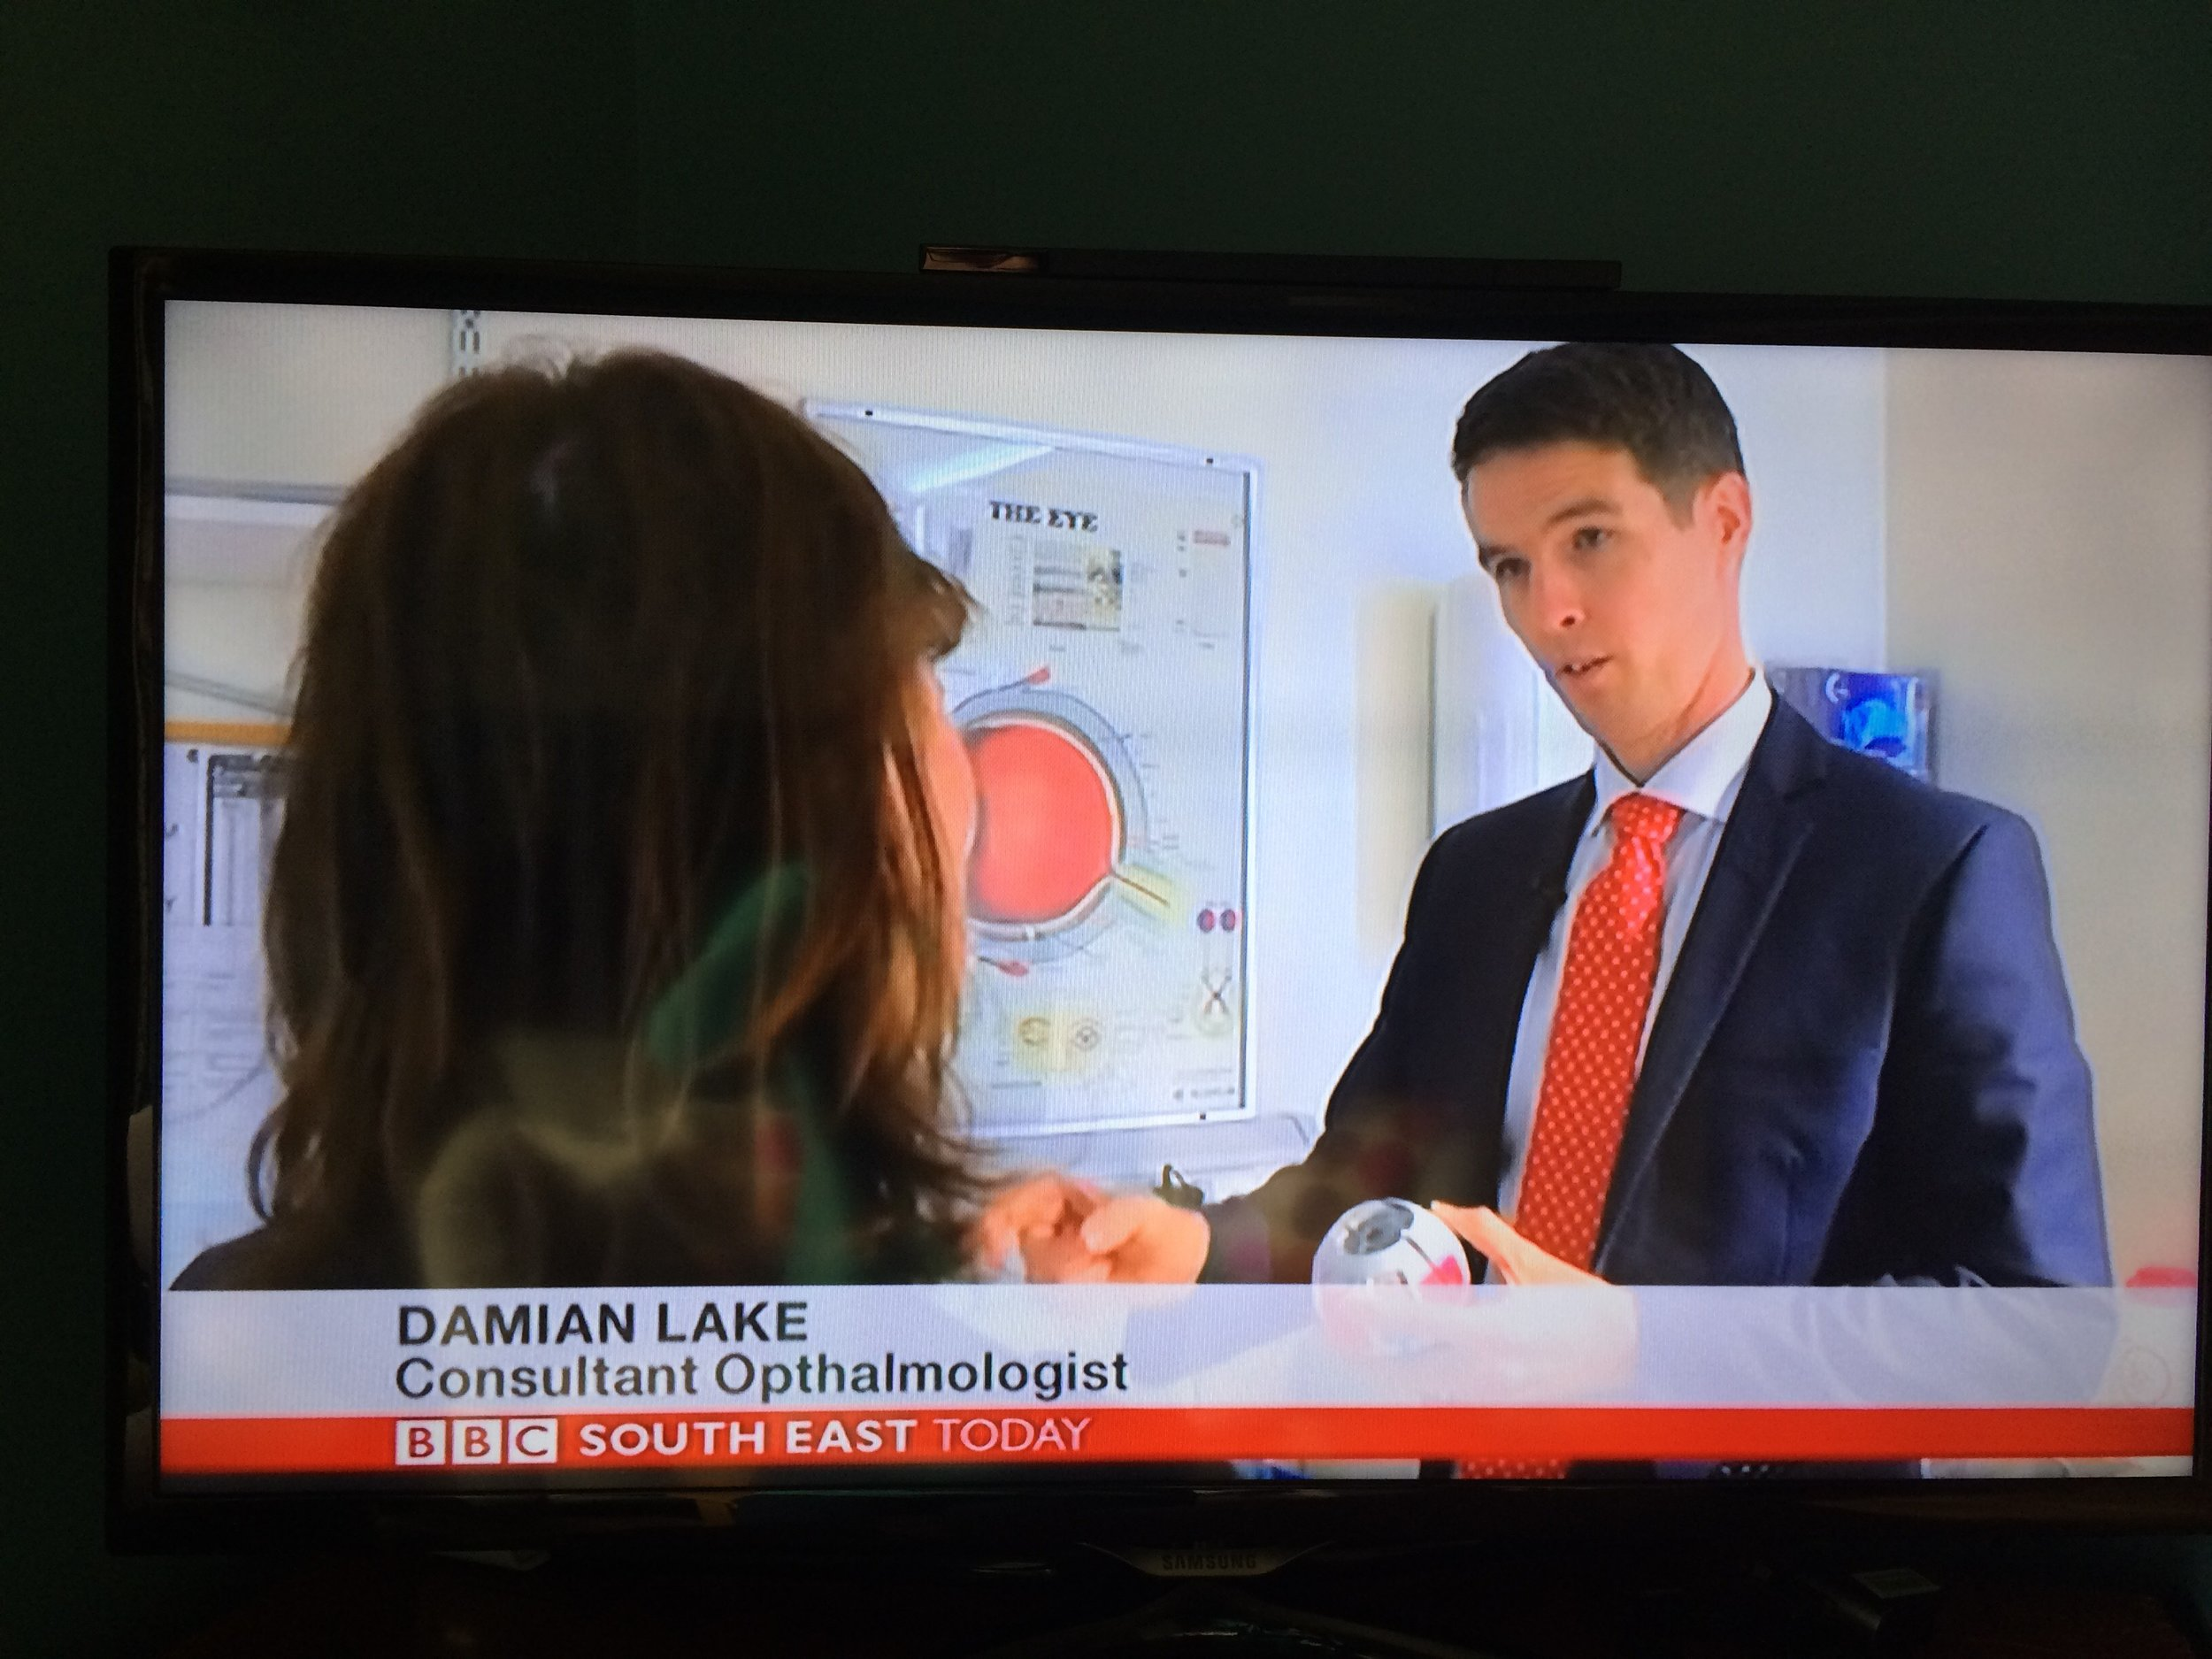 Mr Damian Lake discusses the importance of donors in Corneal Transplantation on the BBC